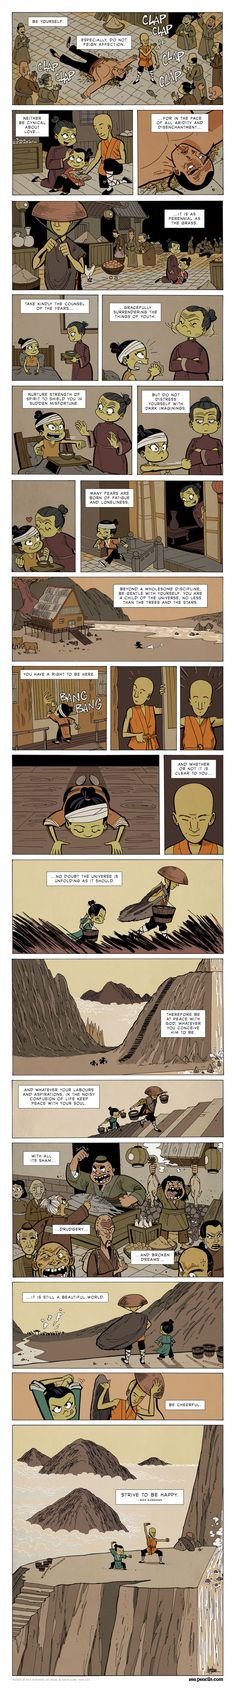 This Zen Comic Is Full of Timeless Life Lessons Desiderata poem by Max Ehrmann beautifully illustrated by Gavin Aung Than